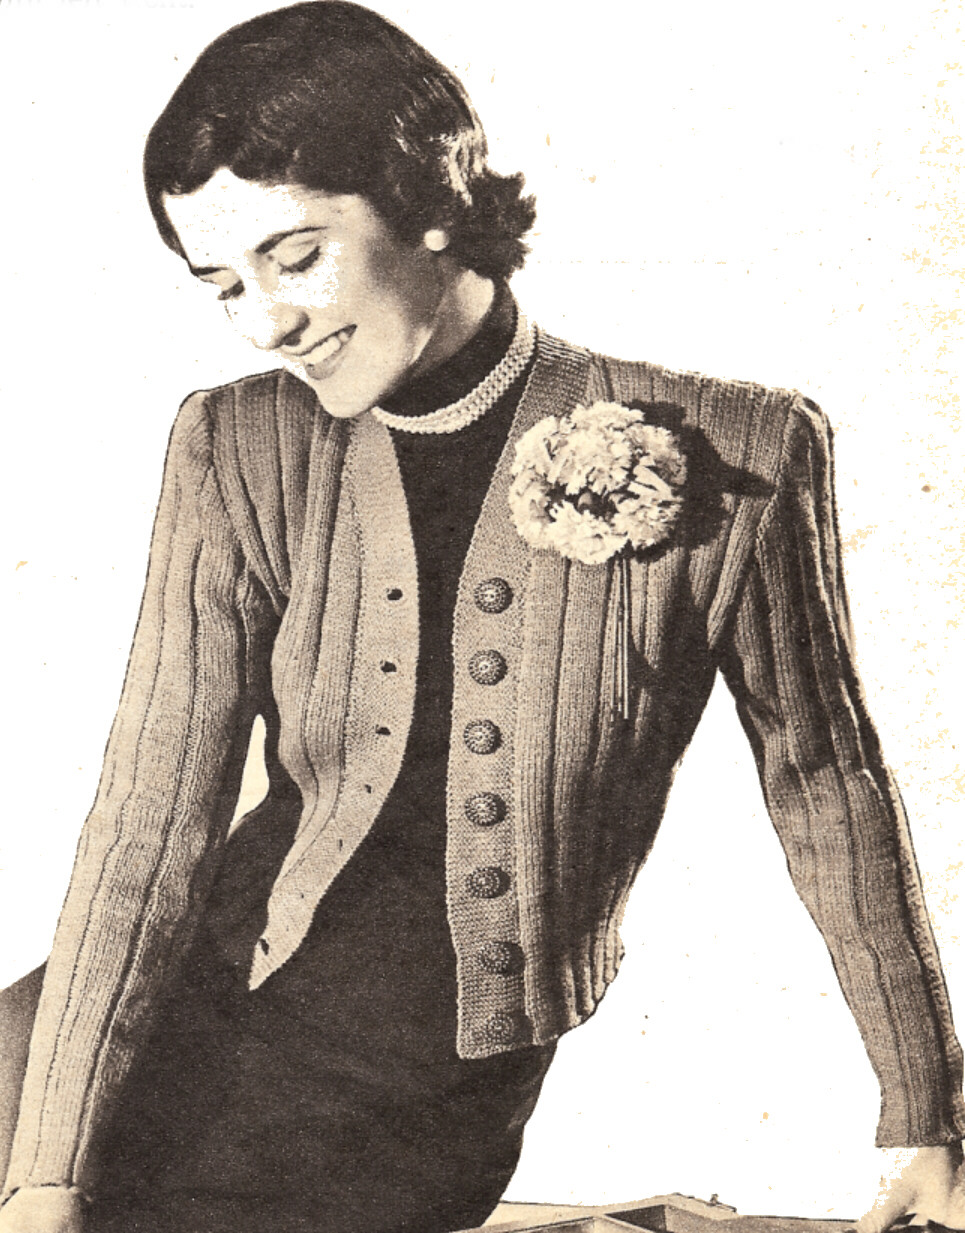 Knitting Patterns For Cardigans And Jackets : Vintage Knitting Pattern to Make Knit Short Cardigan Jacket Sweater